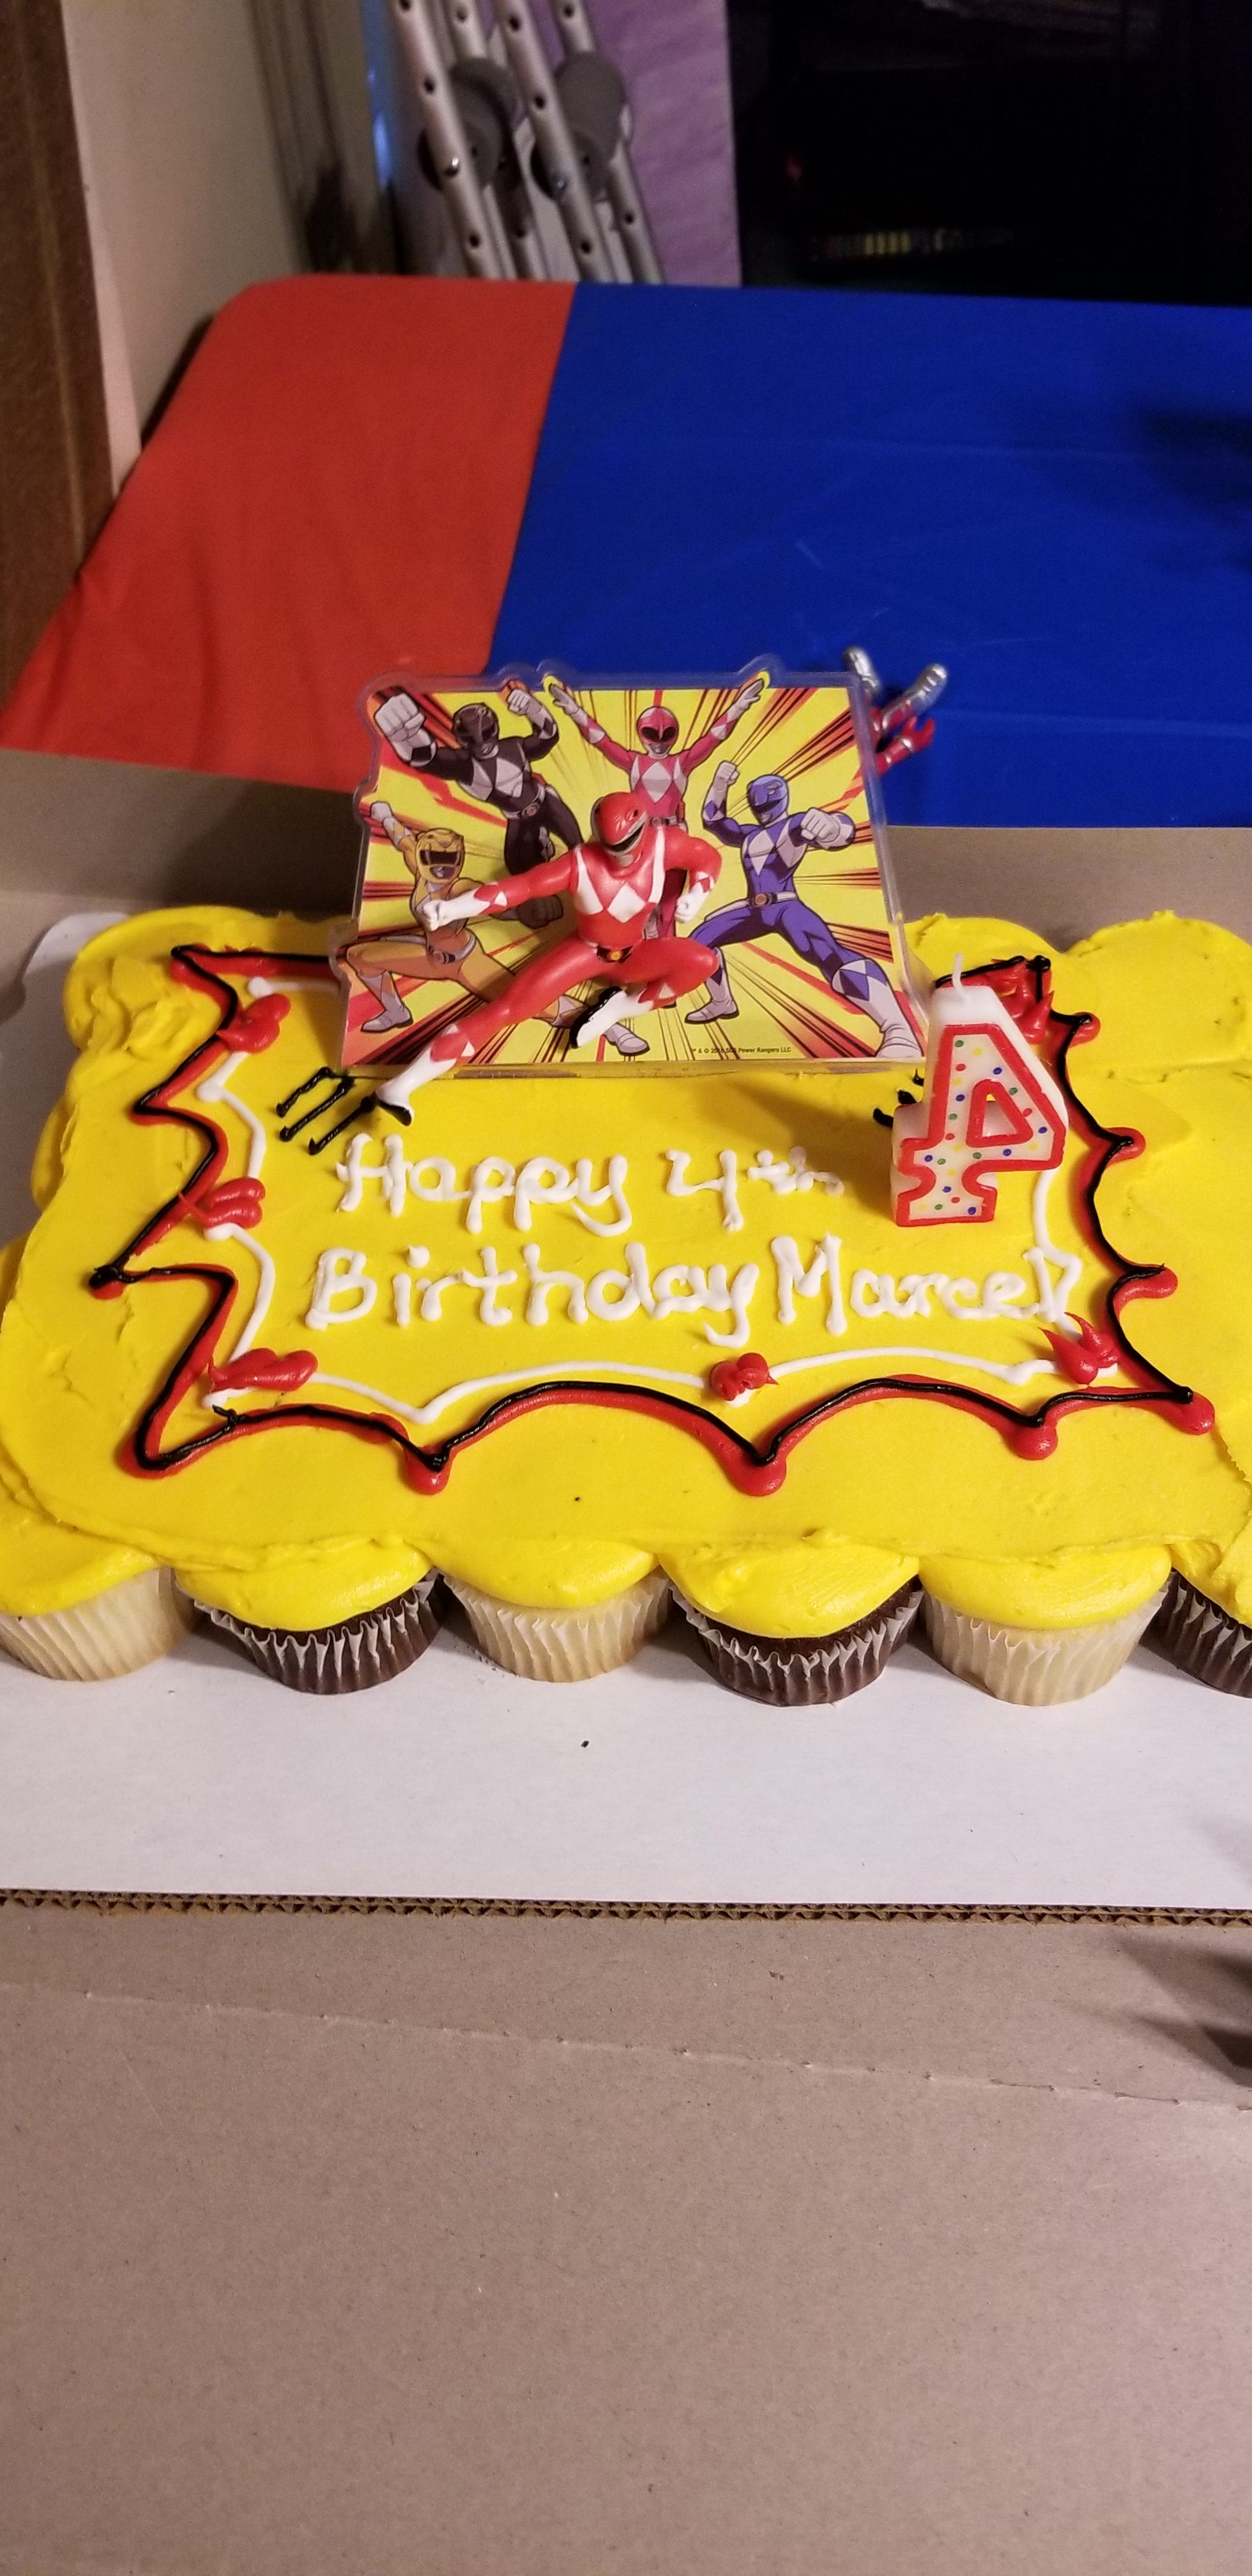 Astonishing The Cupcake Cake Ordered At Walmart Power Ranger Party Personalised Birthday Cards Cominlily Jamesorg